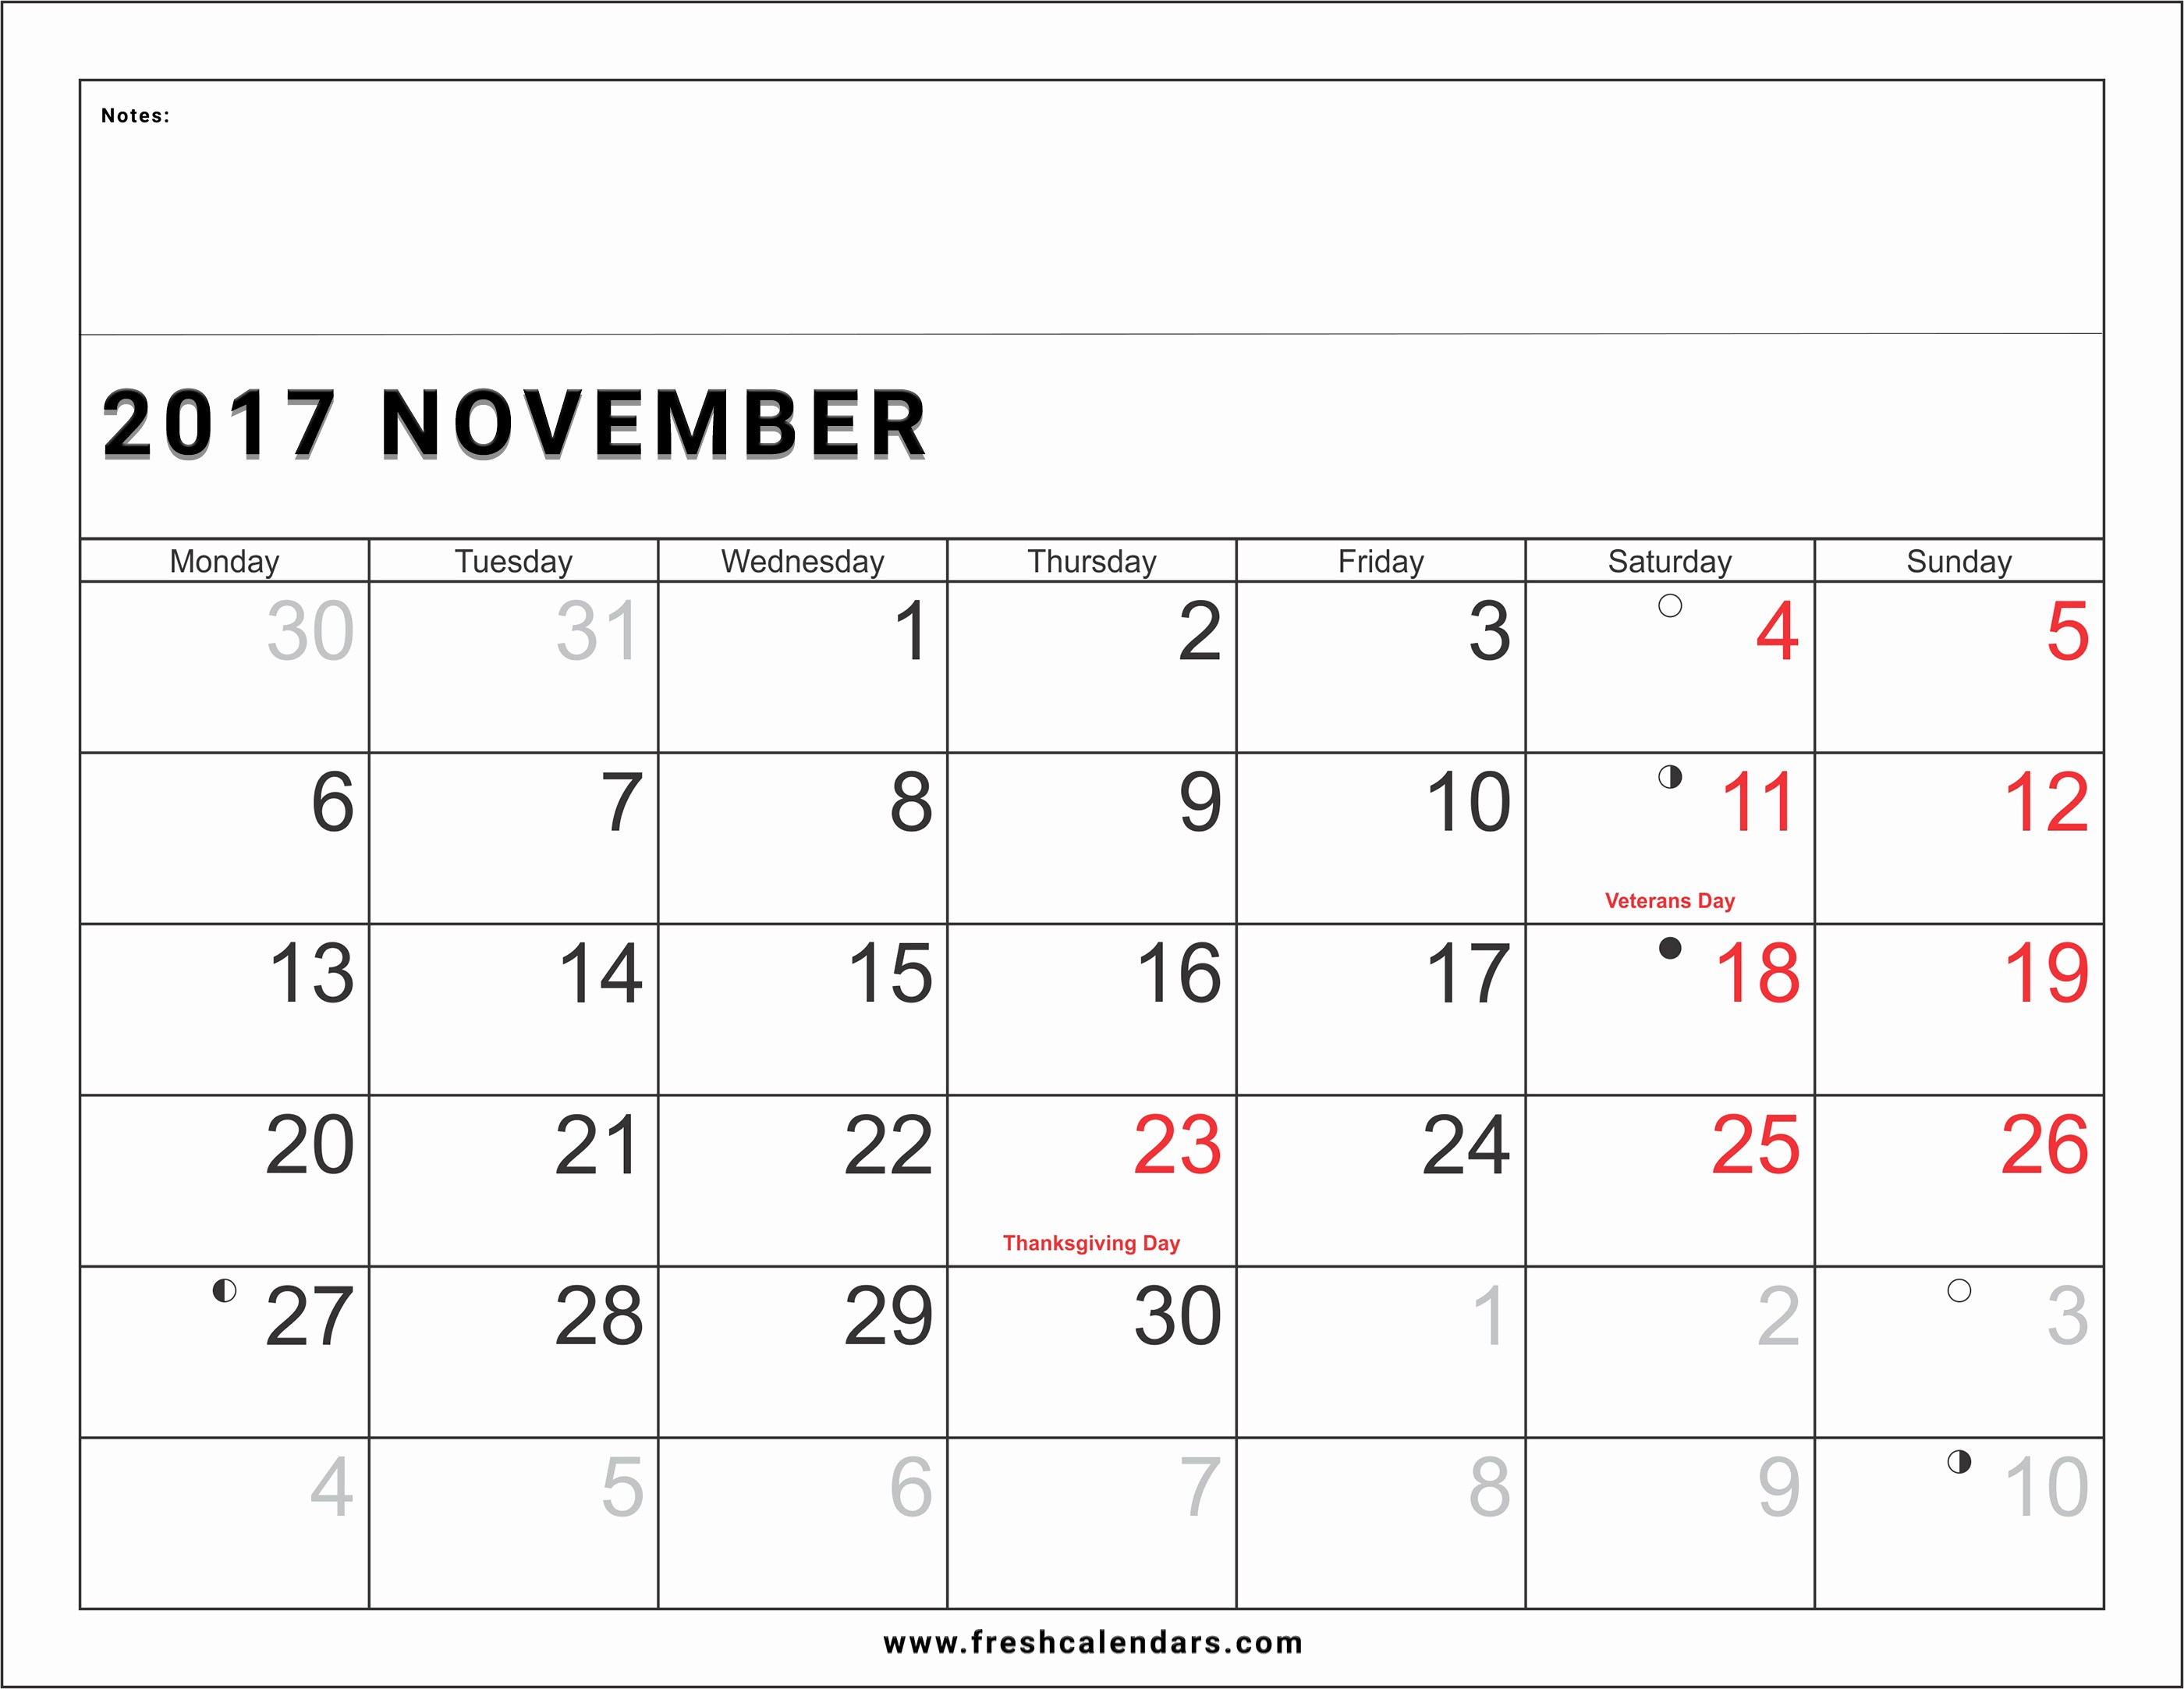 2017 Calendar Template with Notes Awesome Blank November 2017 Calendar Printable Templates